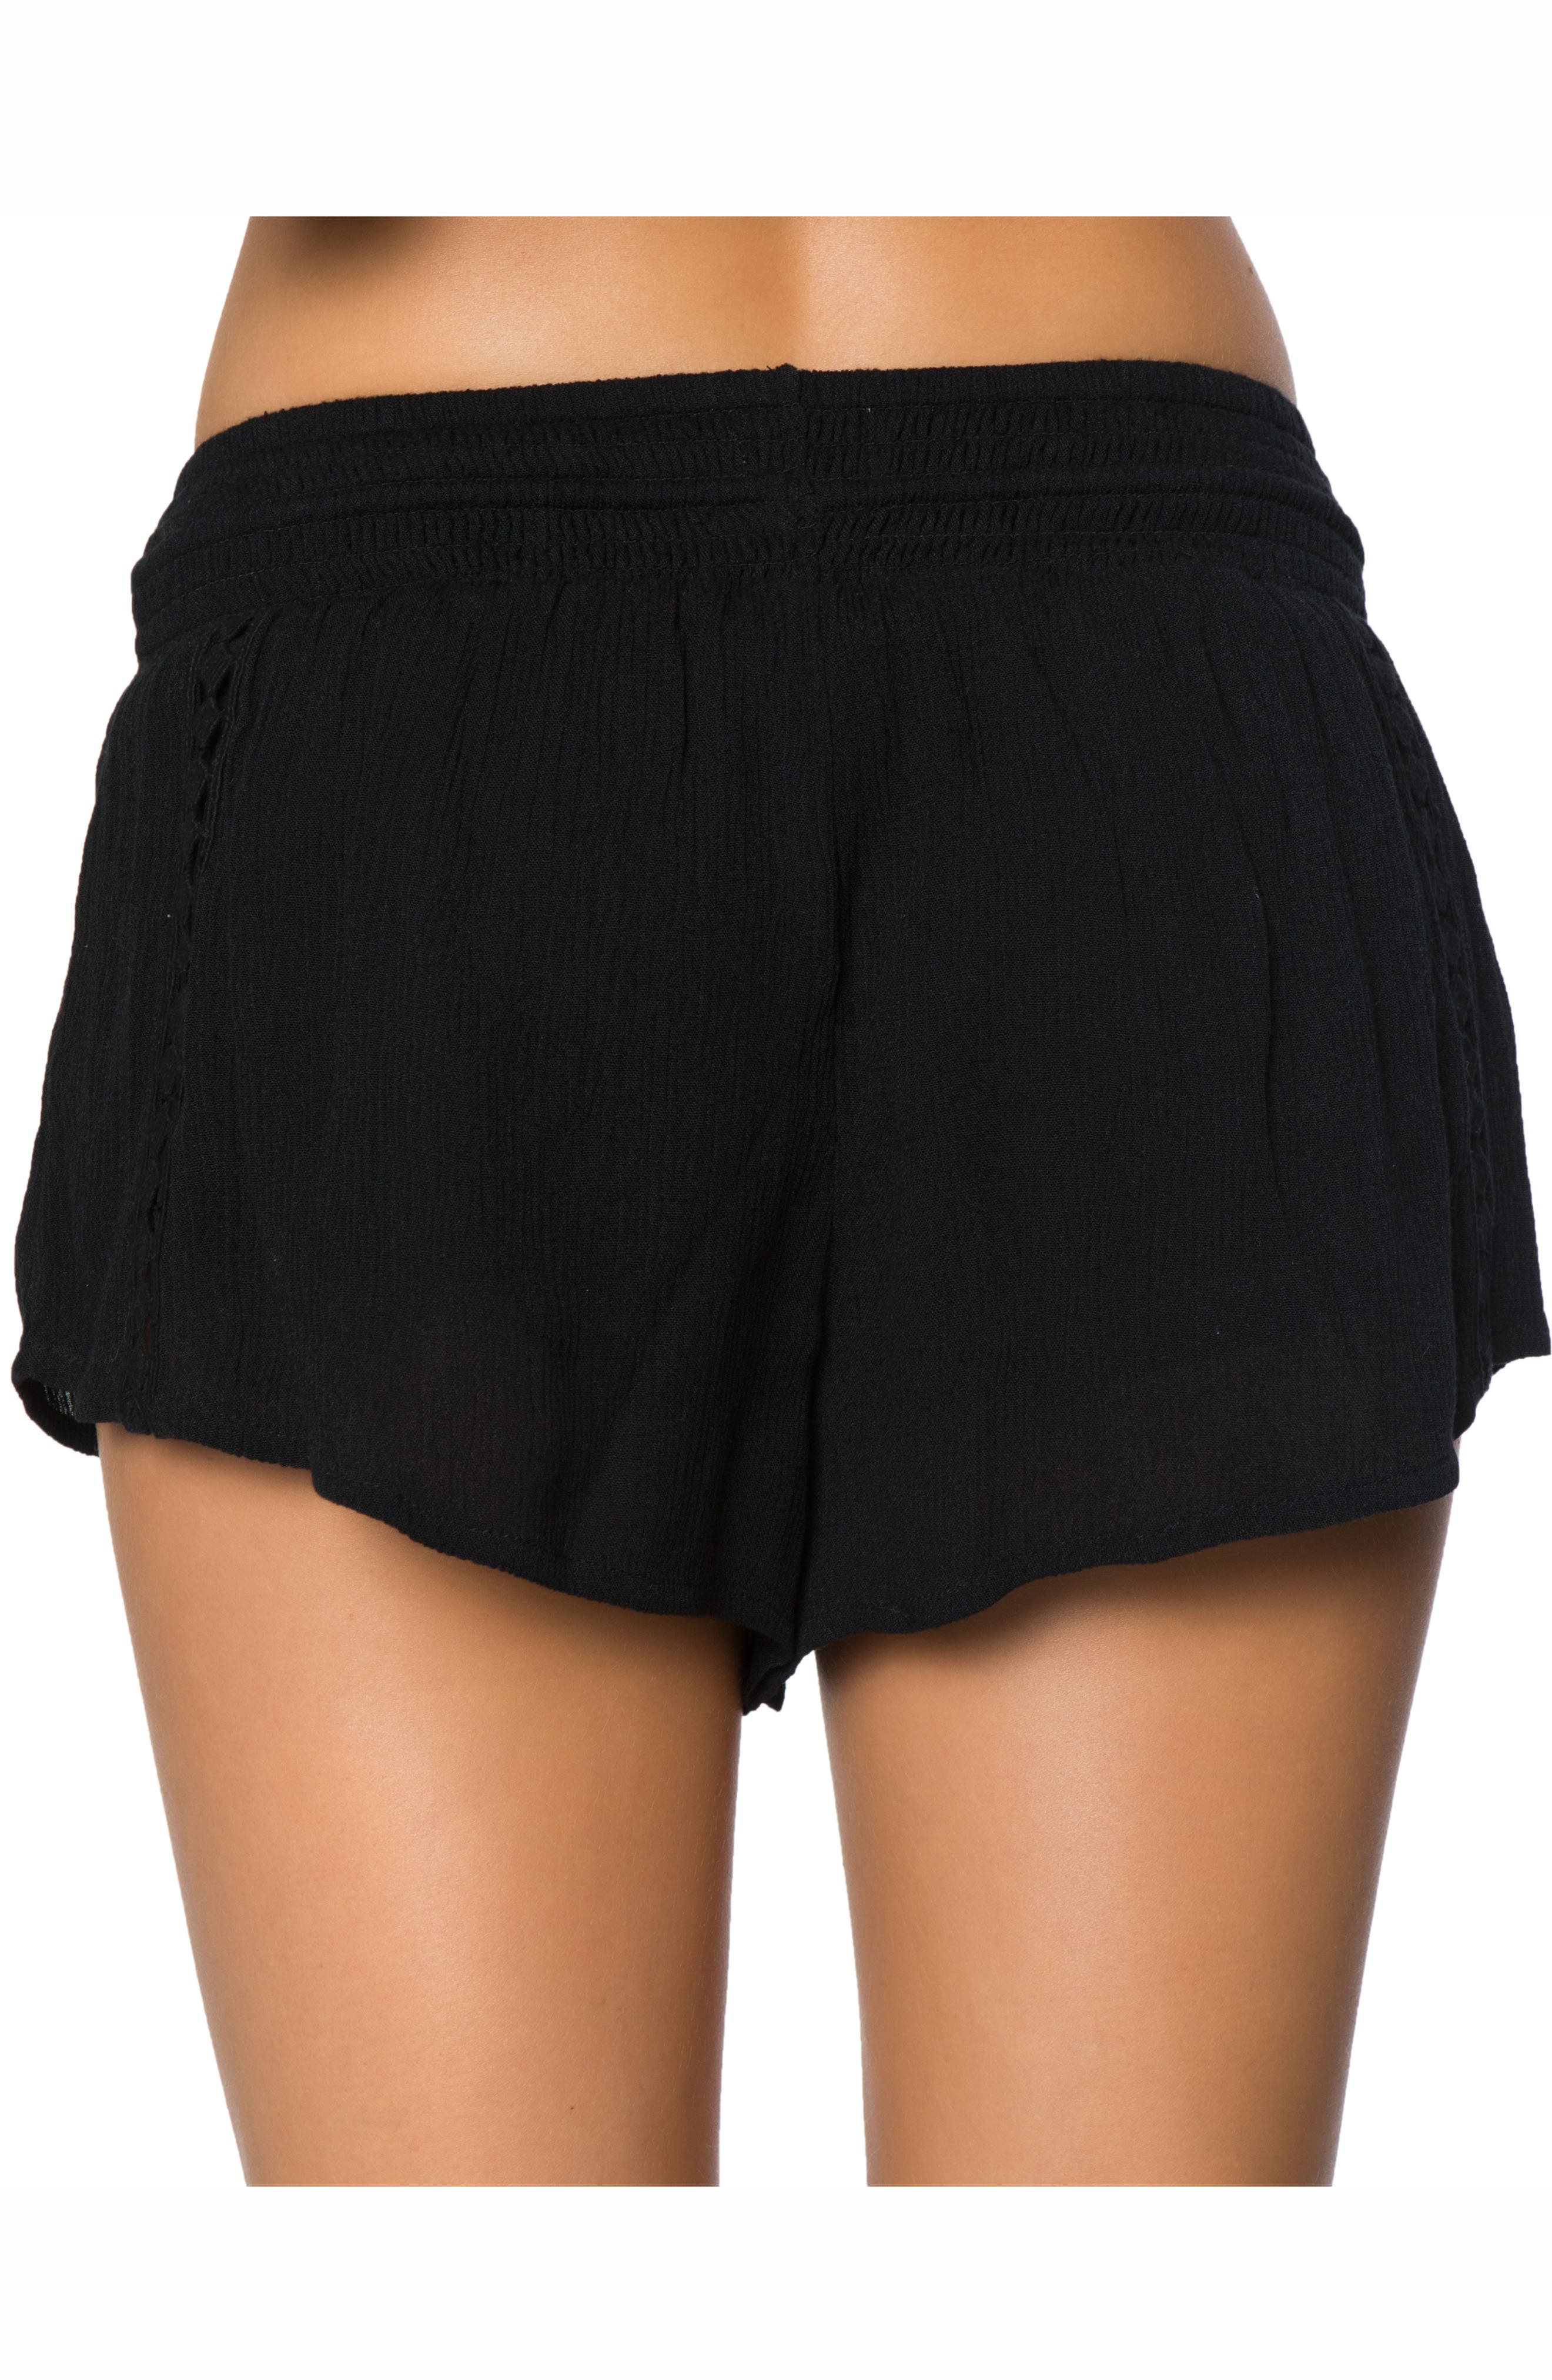 Elise Crochet Trim Shorts,                             Alternate thumbnail 2, color,                             Black